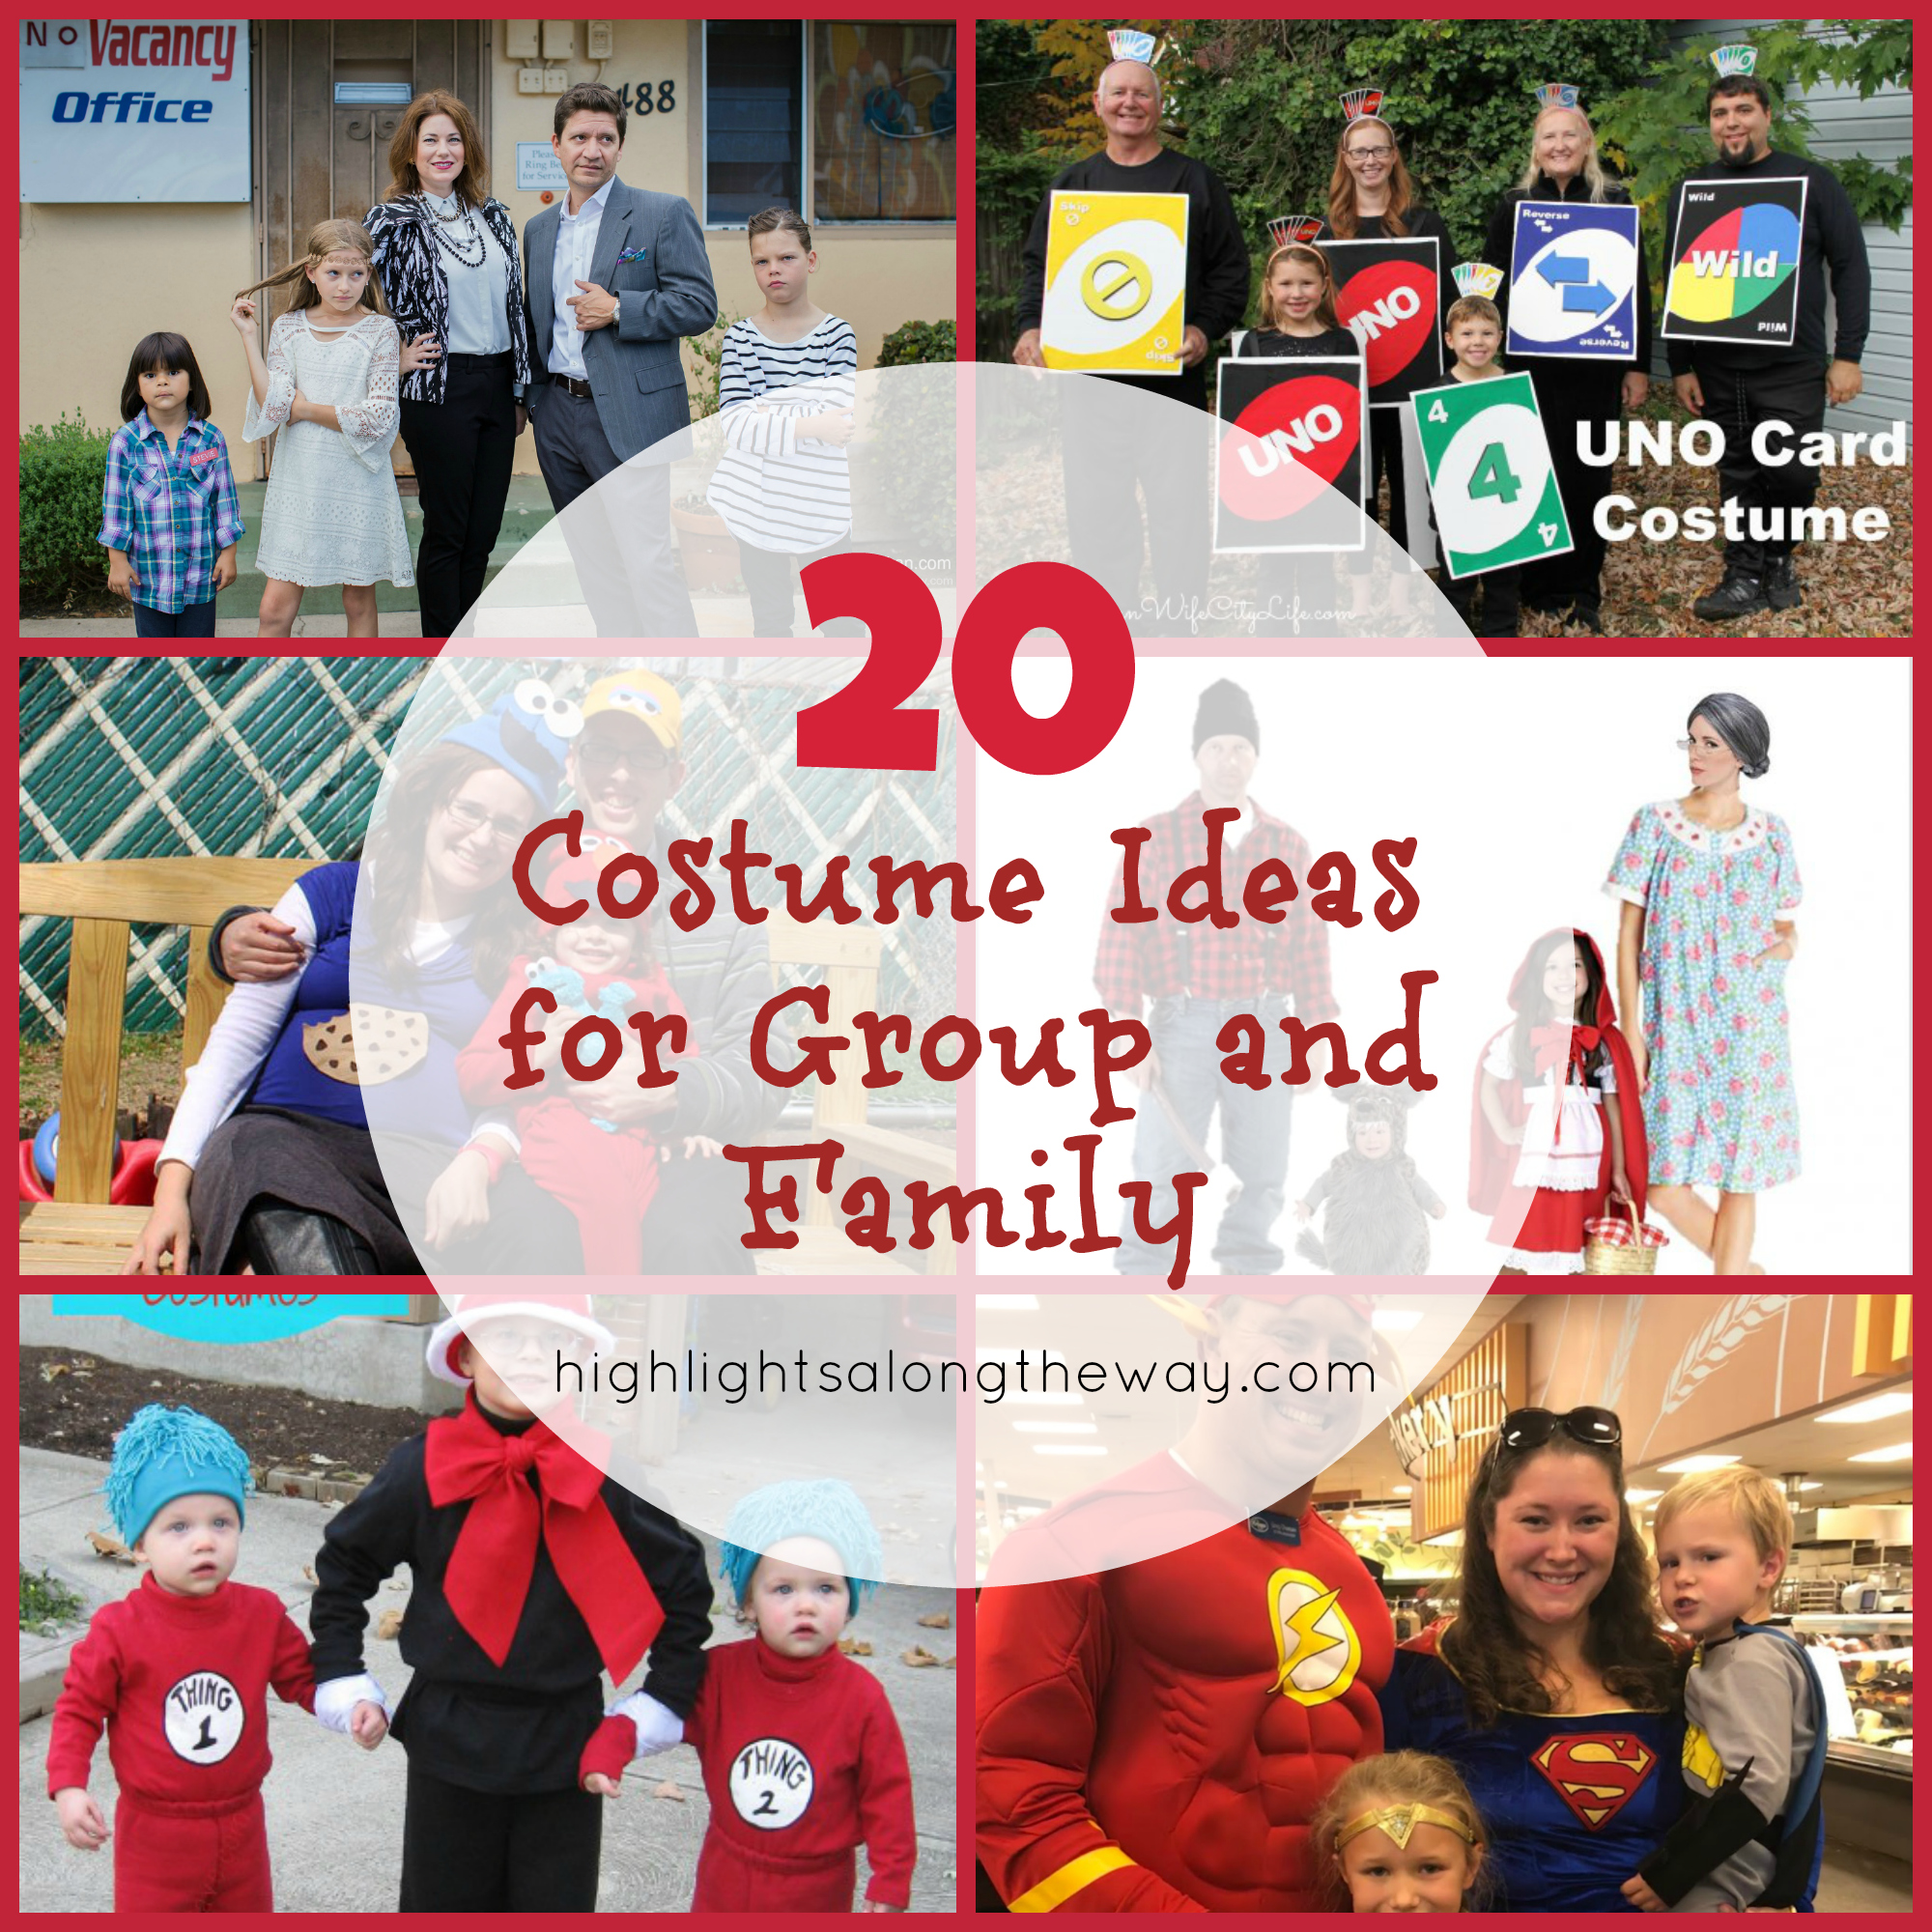 Family and Group Costume Ideas!